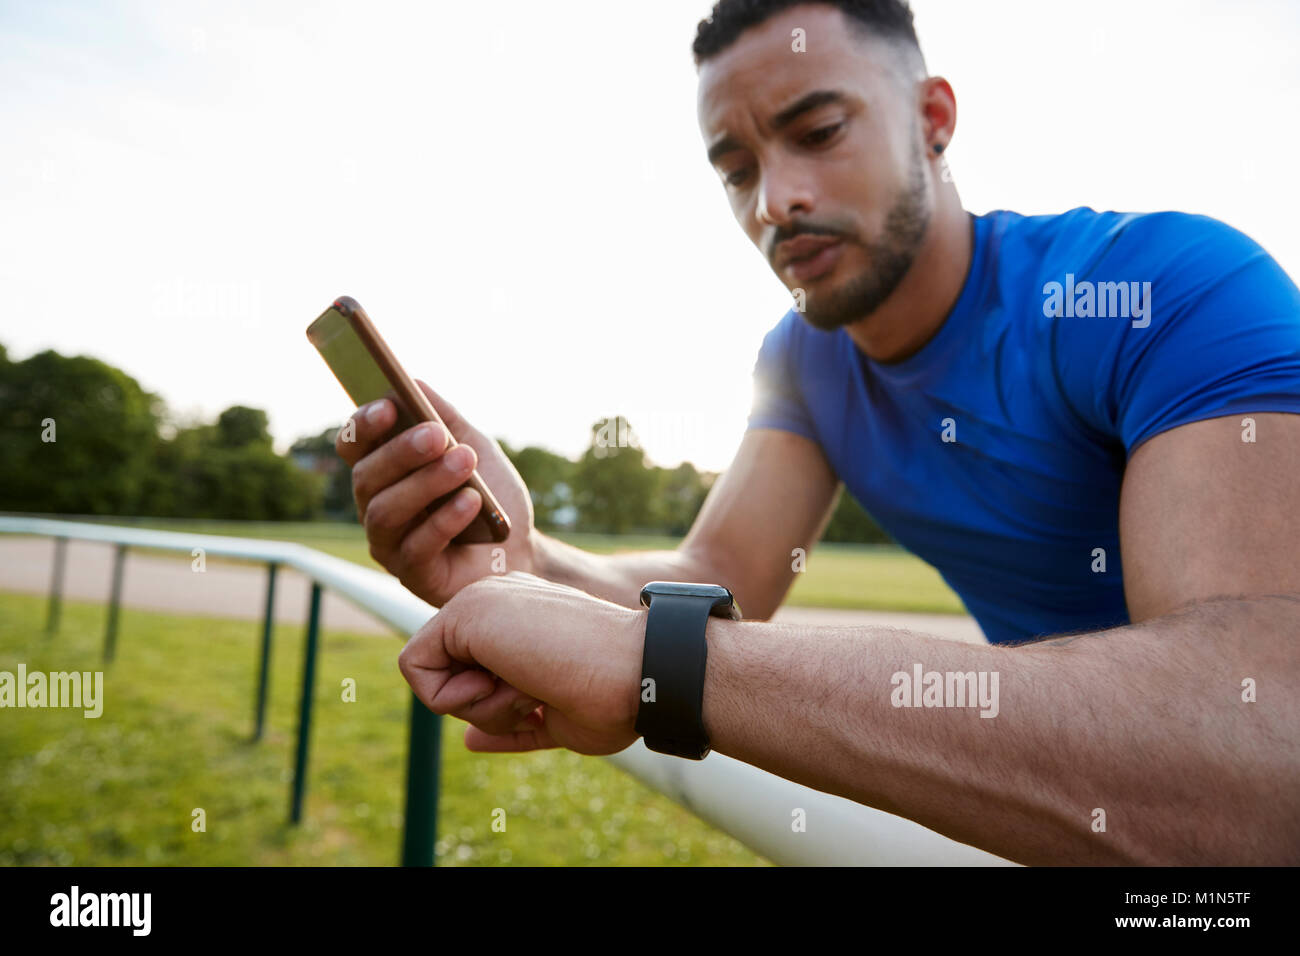 Male athlete using fitness app on smartphone and smartwatch - Stock Image